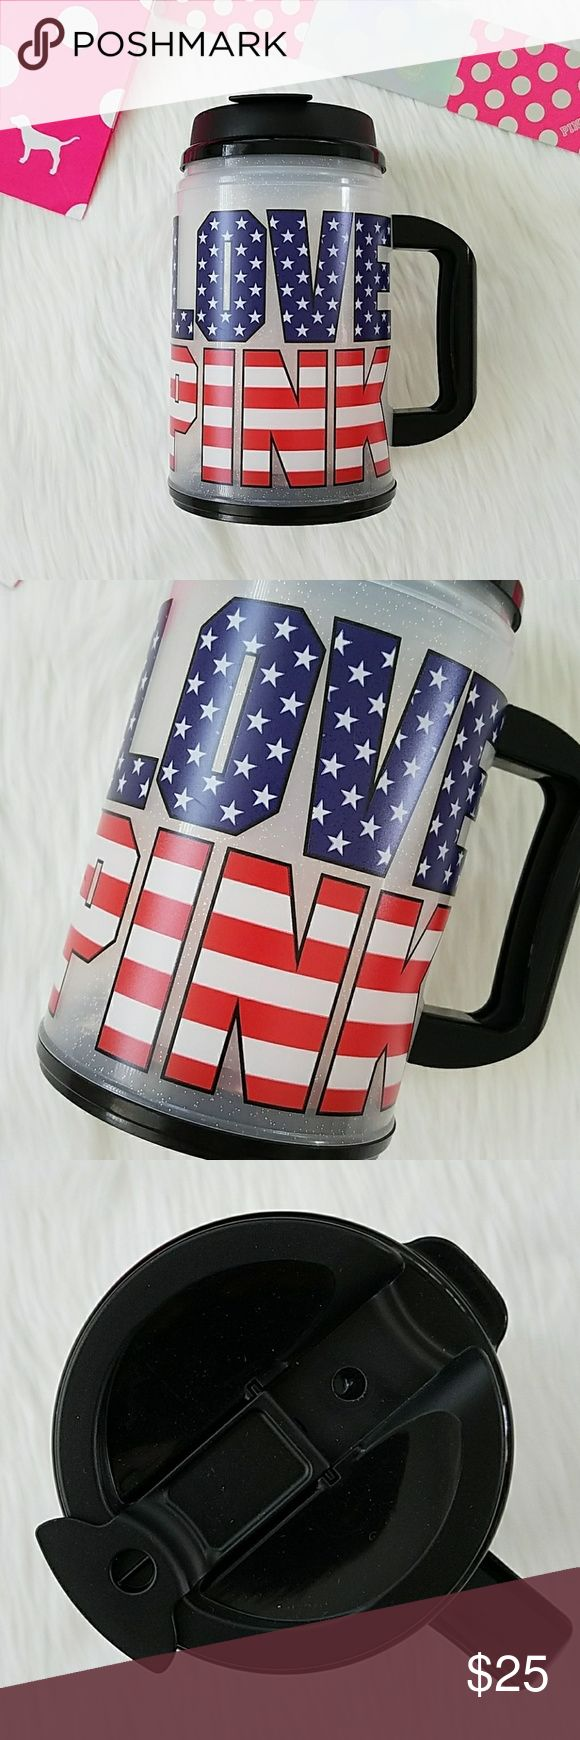 Victorias Secret PINK American Flag Mug Stars USA Victoria's Secret PINK American Flag Mug Brand new Flip top Handle Glitter mug showcasing a LOVE PINK logo in red, white, and blue  Celebrate the stars and stripes on Memorial Day, July 4th Independence Day, celebrate your loved ones in military service, or just celebrate our nation America every day day :) PINK Victoria's Secret Other